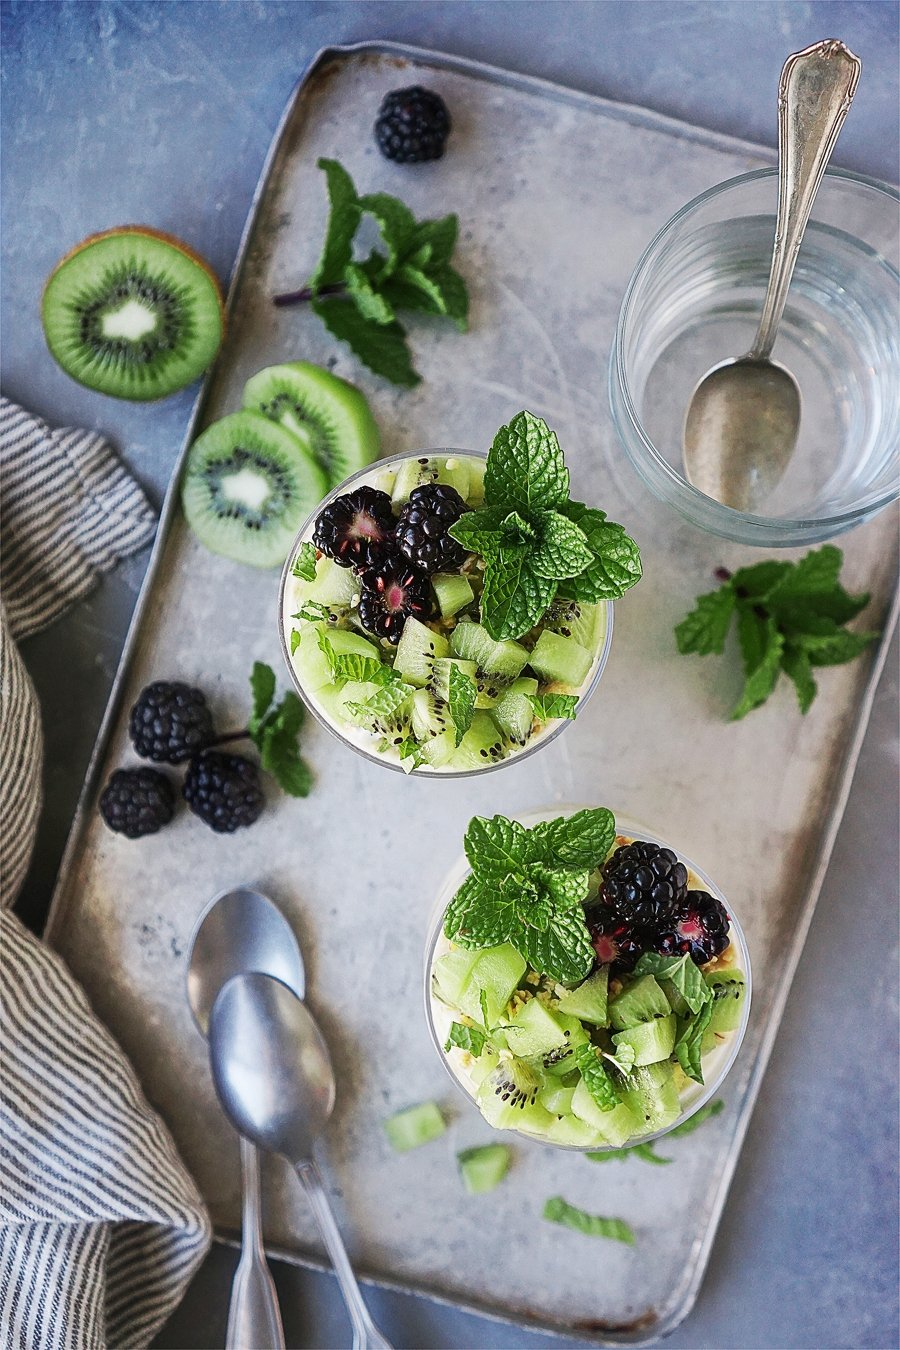 Two Yogurt Parfaits with sliced kiwis garnished with mint and blackberries